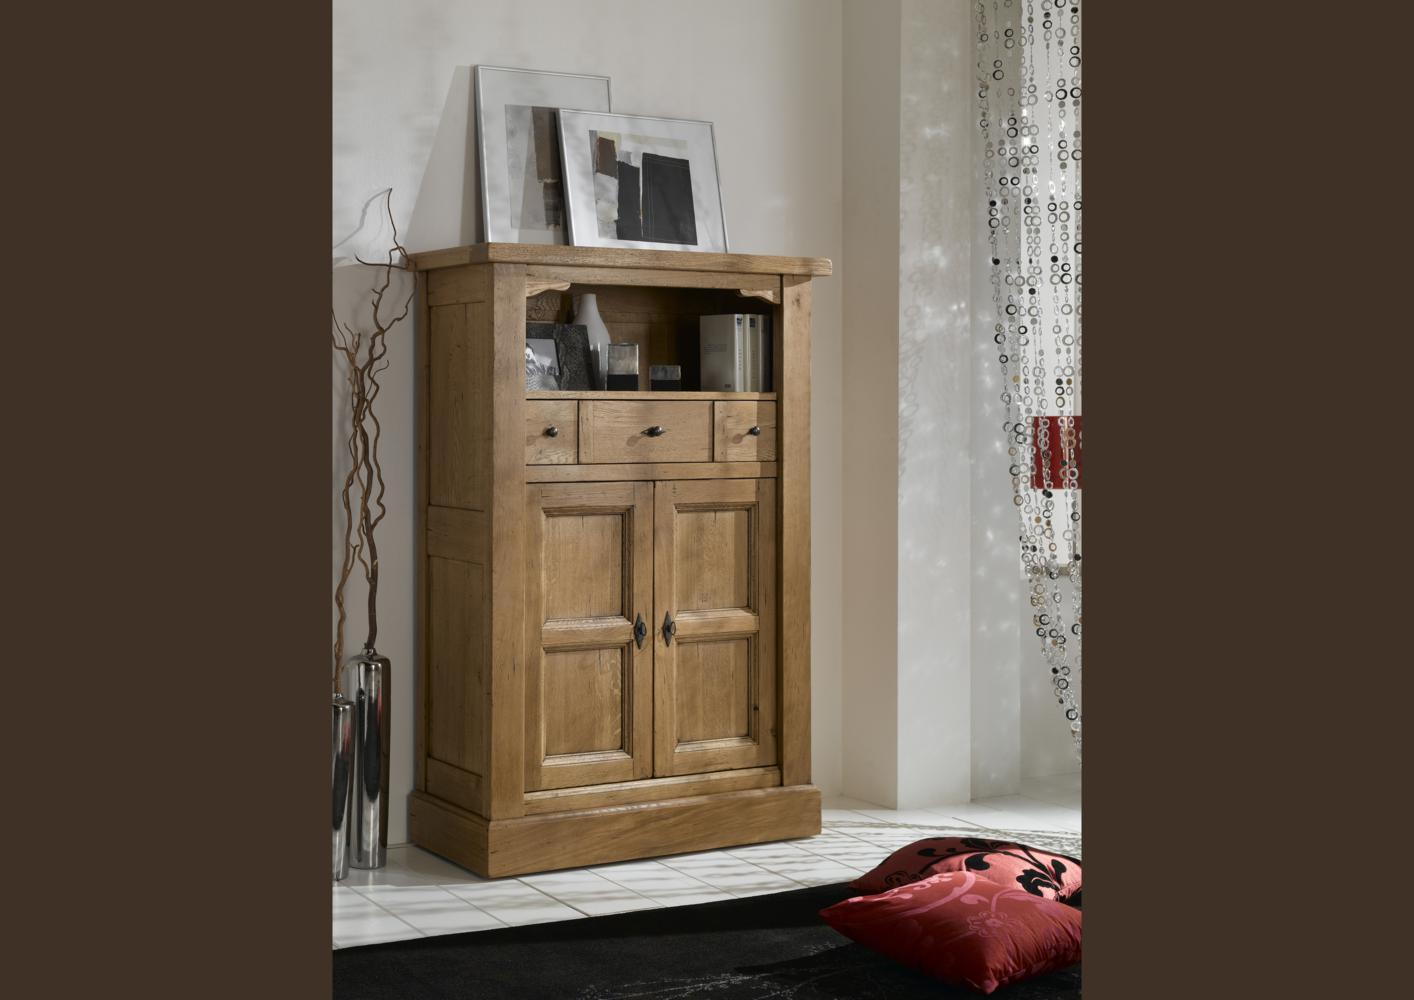 acheter votre vitrine 2 portes chez simeuble. Black Bedroom Furniture Sets. Home Design Ideas